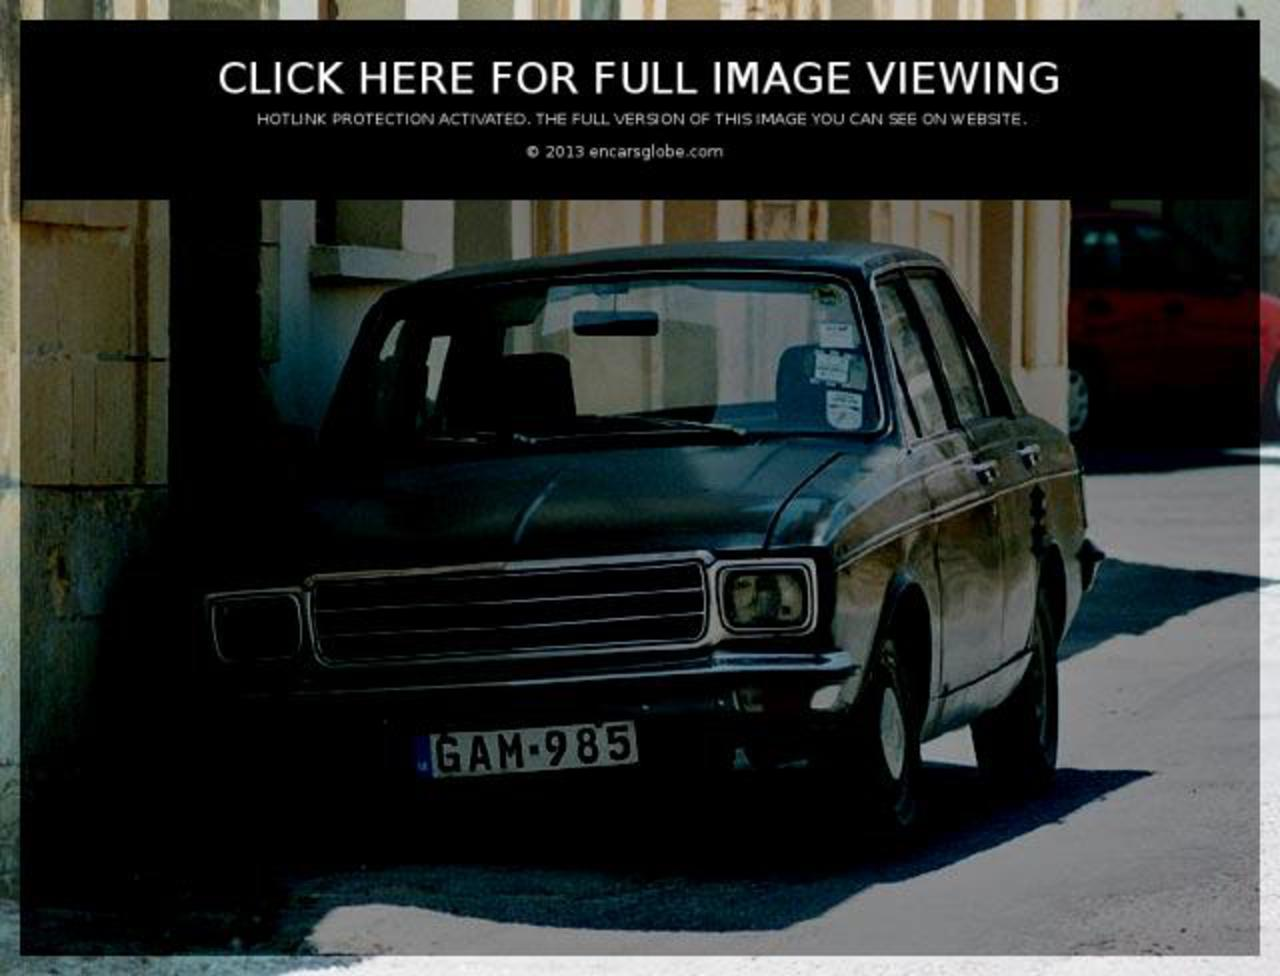 Hillman Super Minx sedan Photo Gallery: Photo #06 out of 9, Image ...